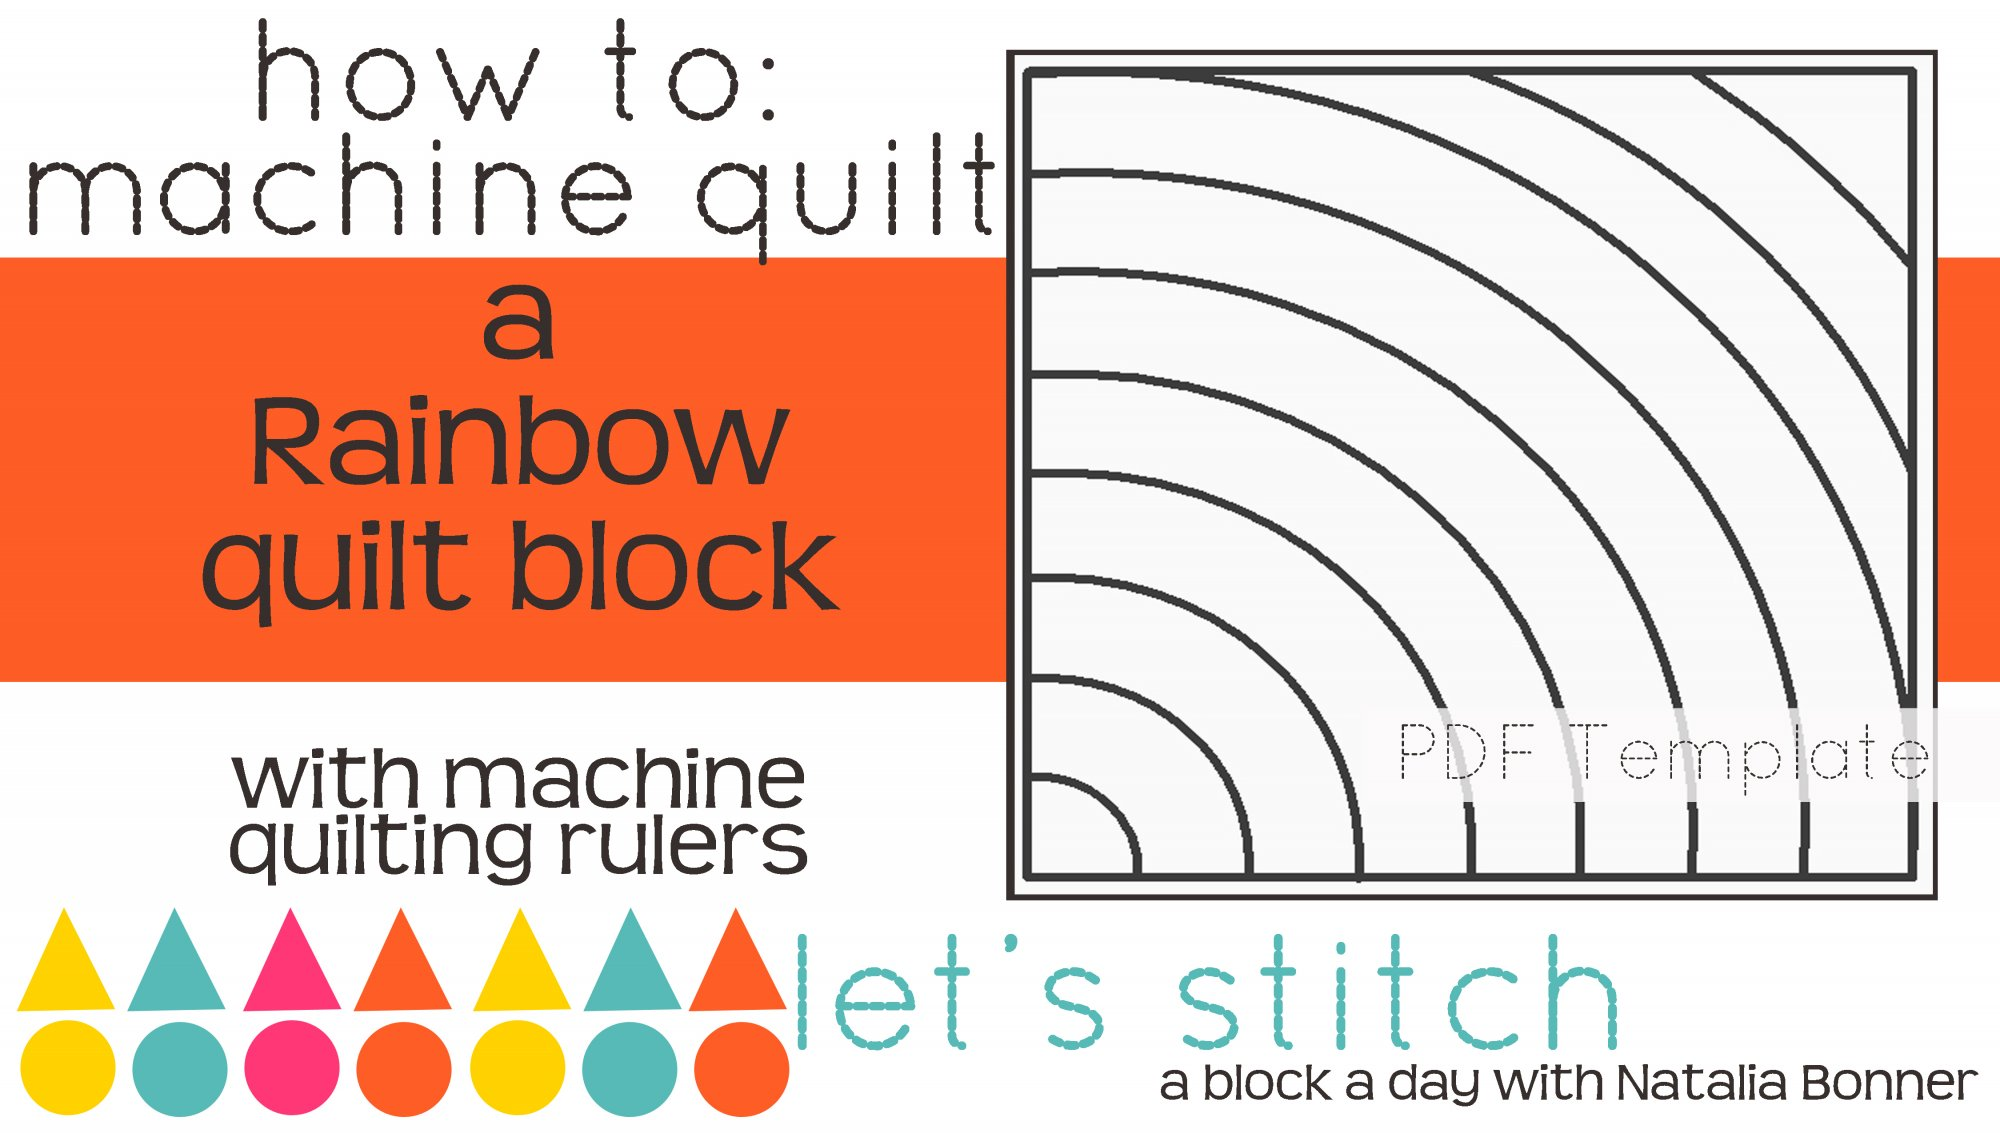 Let's Stitch - A Block a Day With Natalia Bonner - PDF - Rainbow